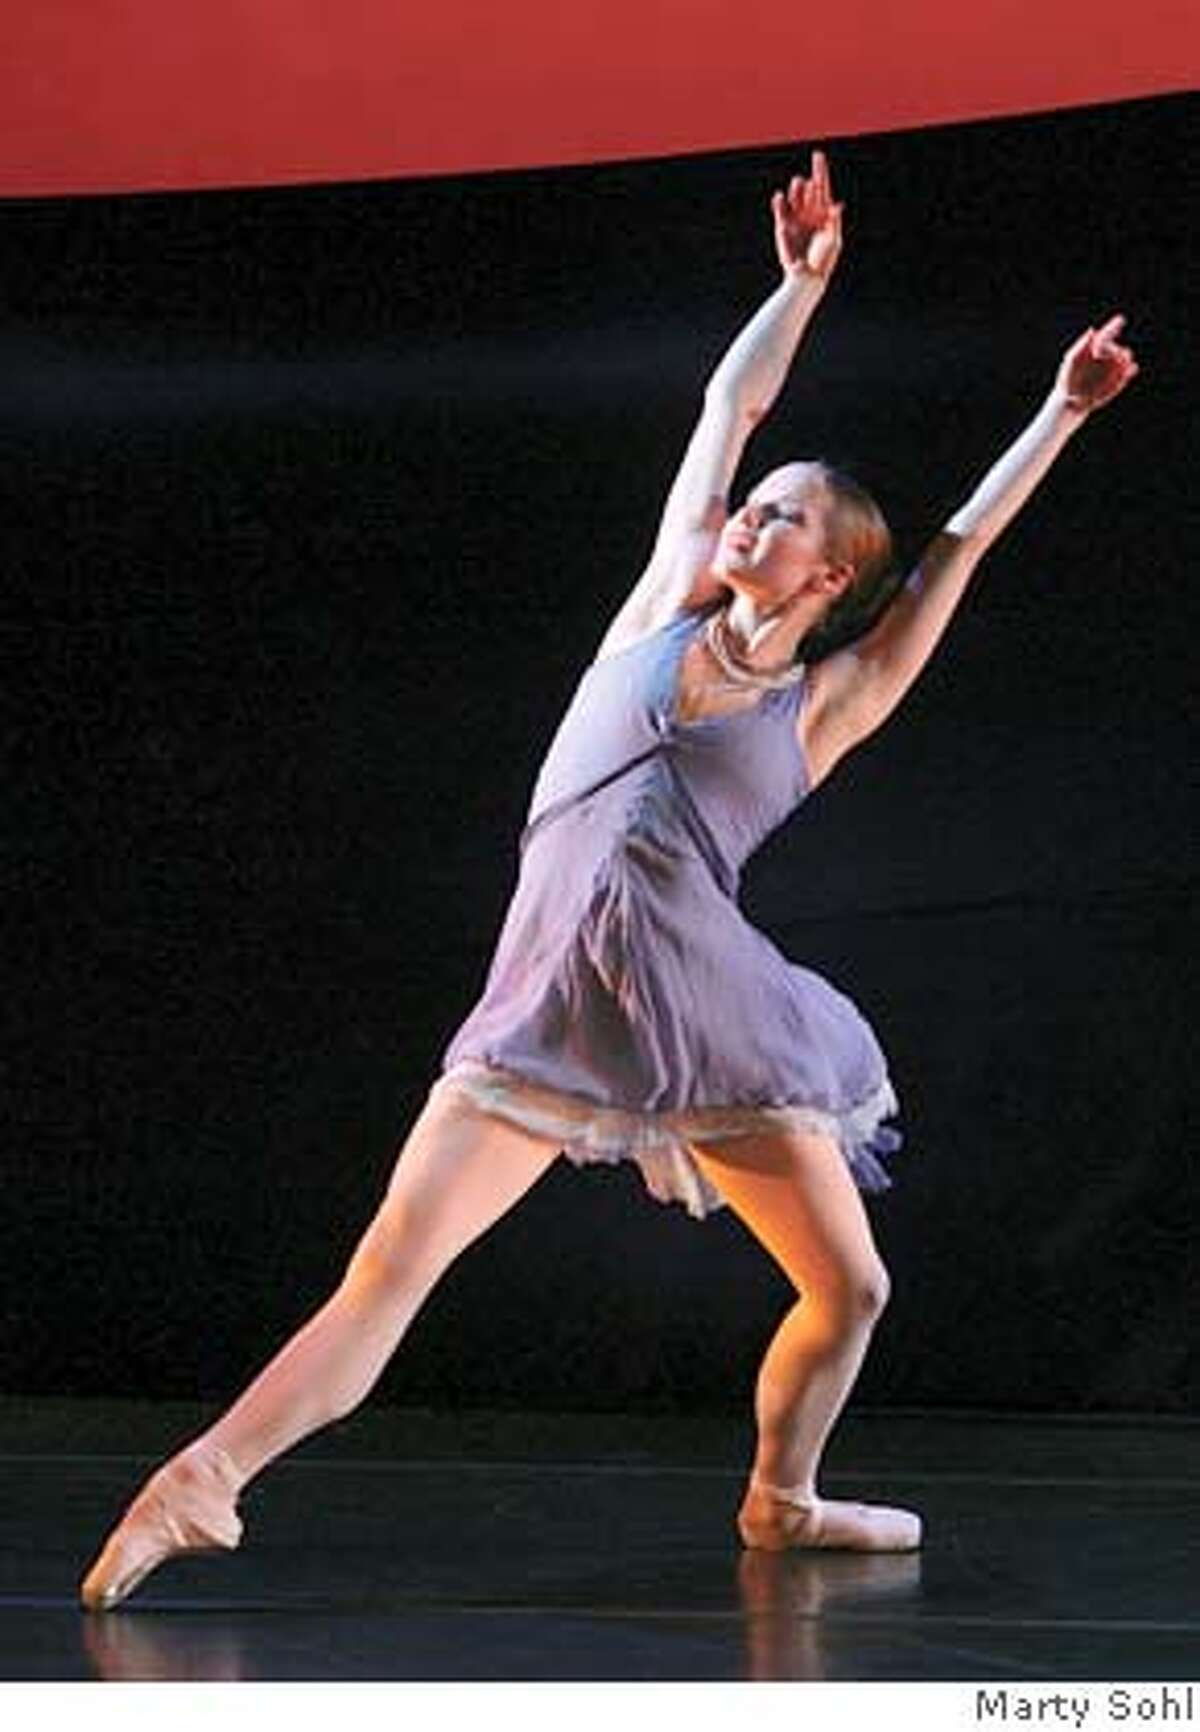 Jenna Maule, of Company C Contemporary Ballet, in Alexandre Proia's Rhapsody in Blue. Commissioned by the 2007 Mendocino Music Festival